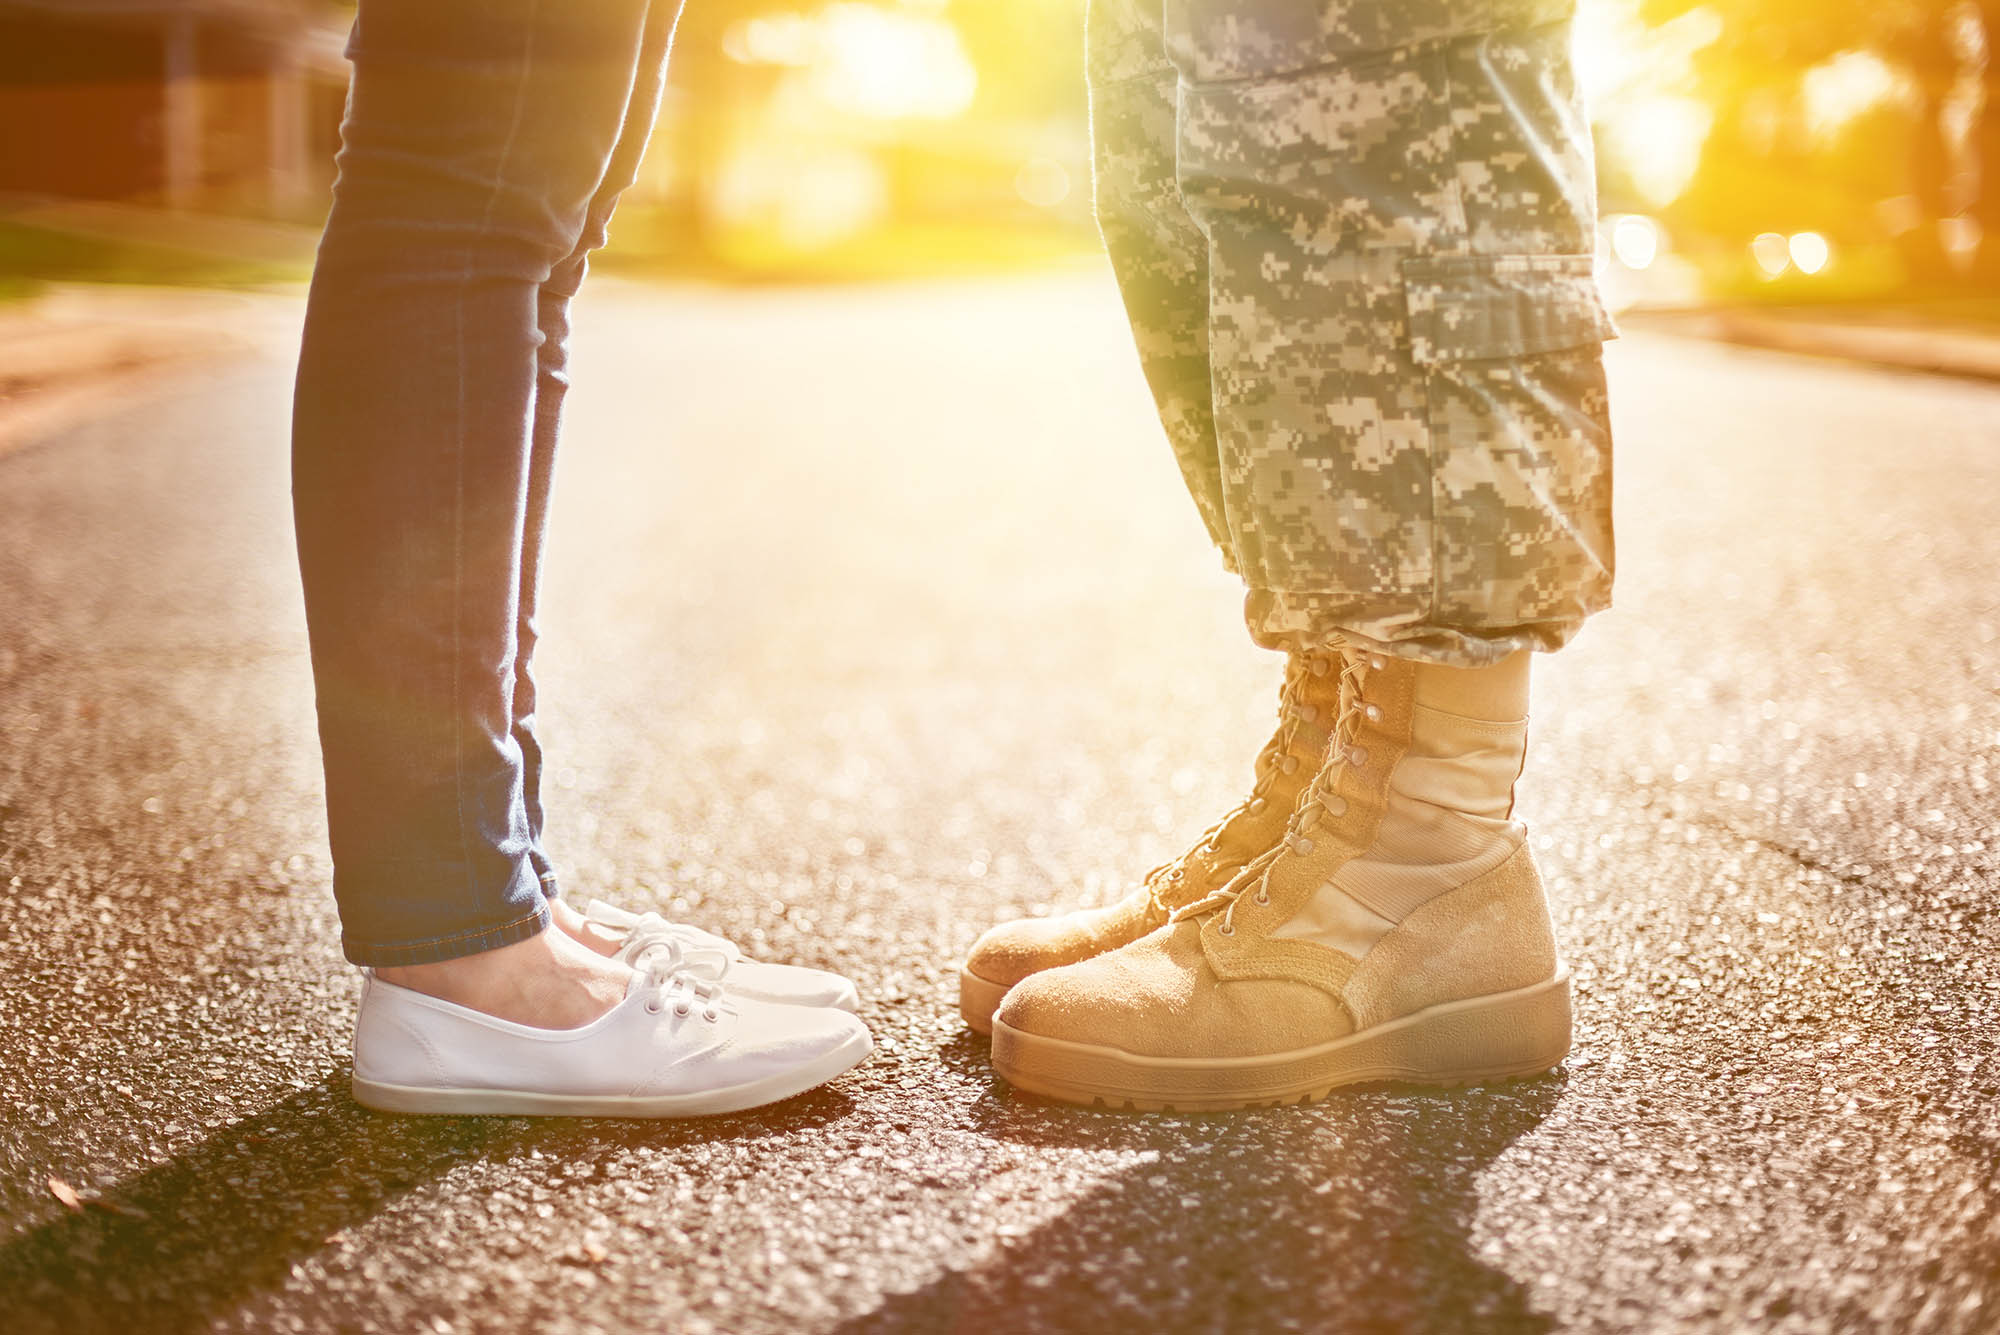 Problems facing military spouses are 'an issue of national security,' Brookings panel discussion concludes